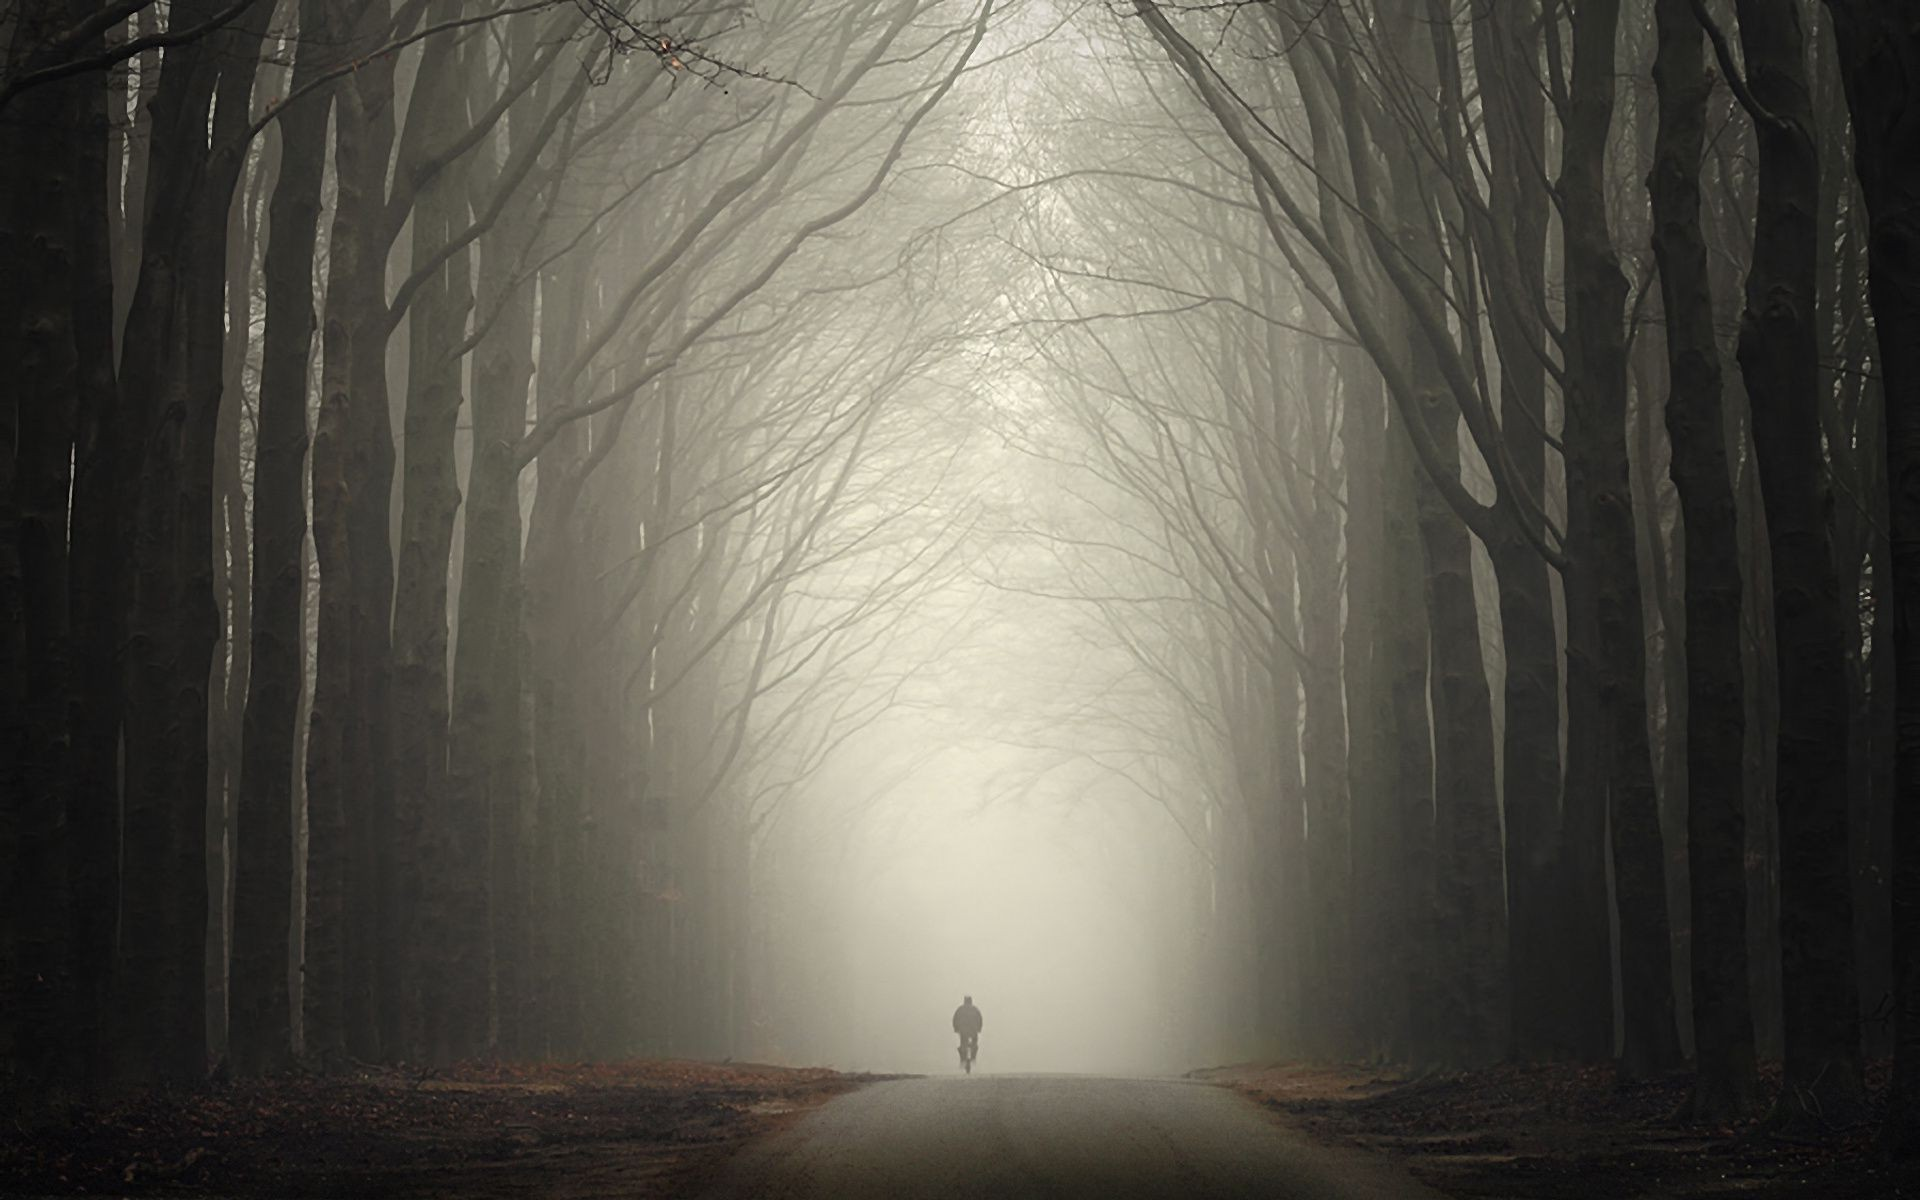 Man Autumn Forest Road Fog Android Wallpapers For Free